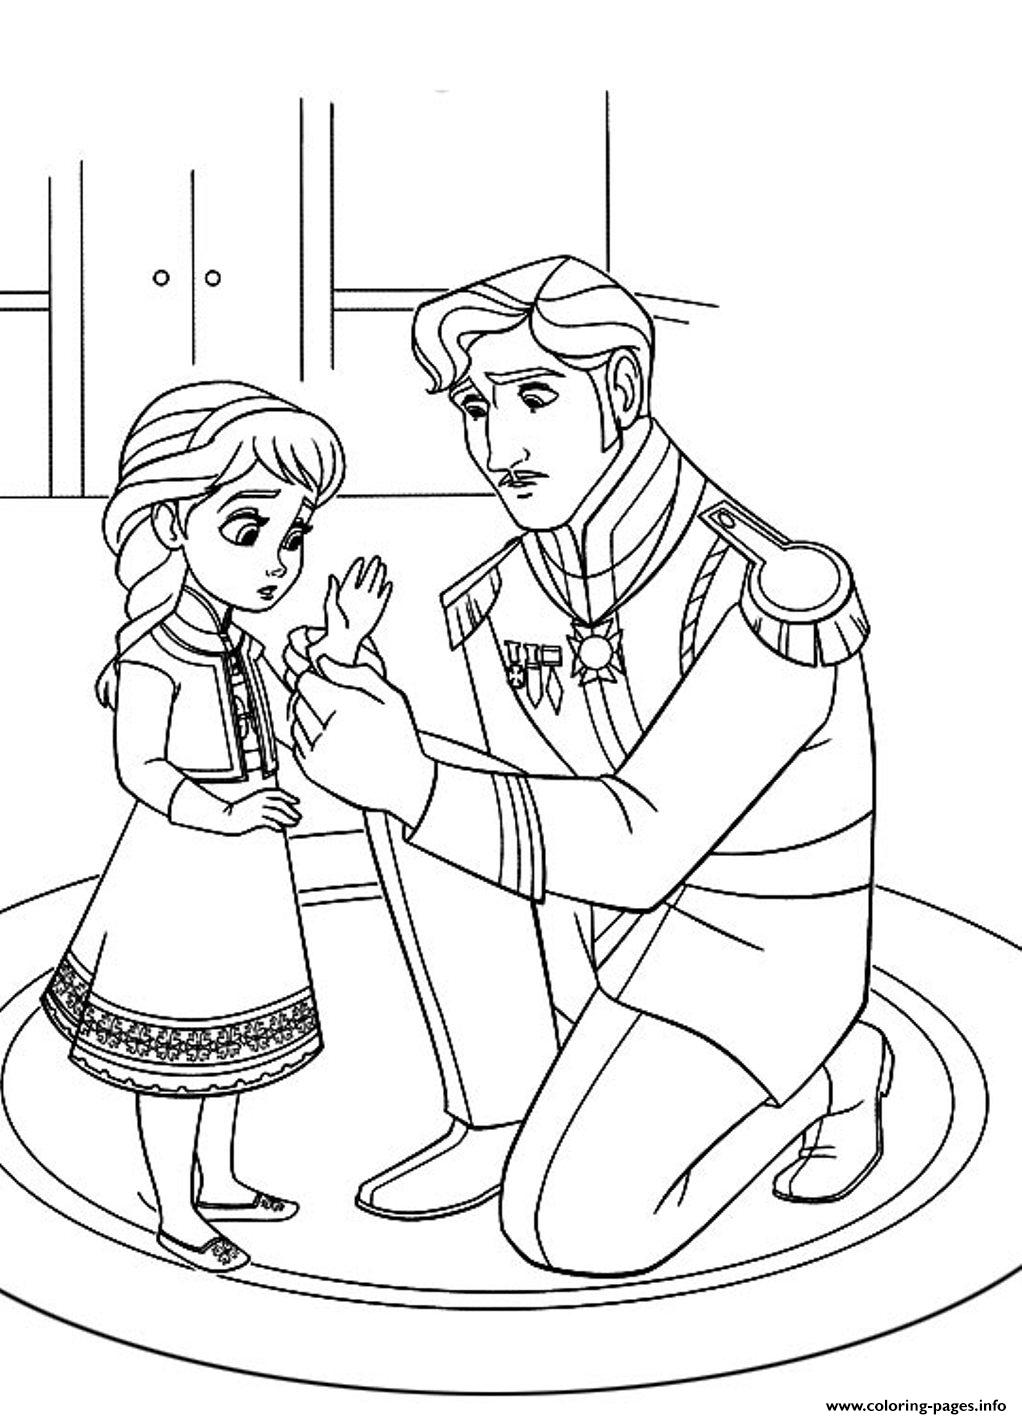 free frozen coloring pages free printable frozen olaf coloring pages pages frozen coloring free